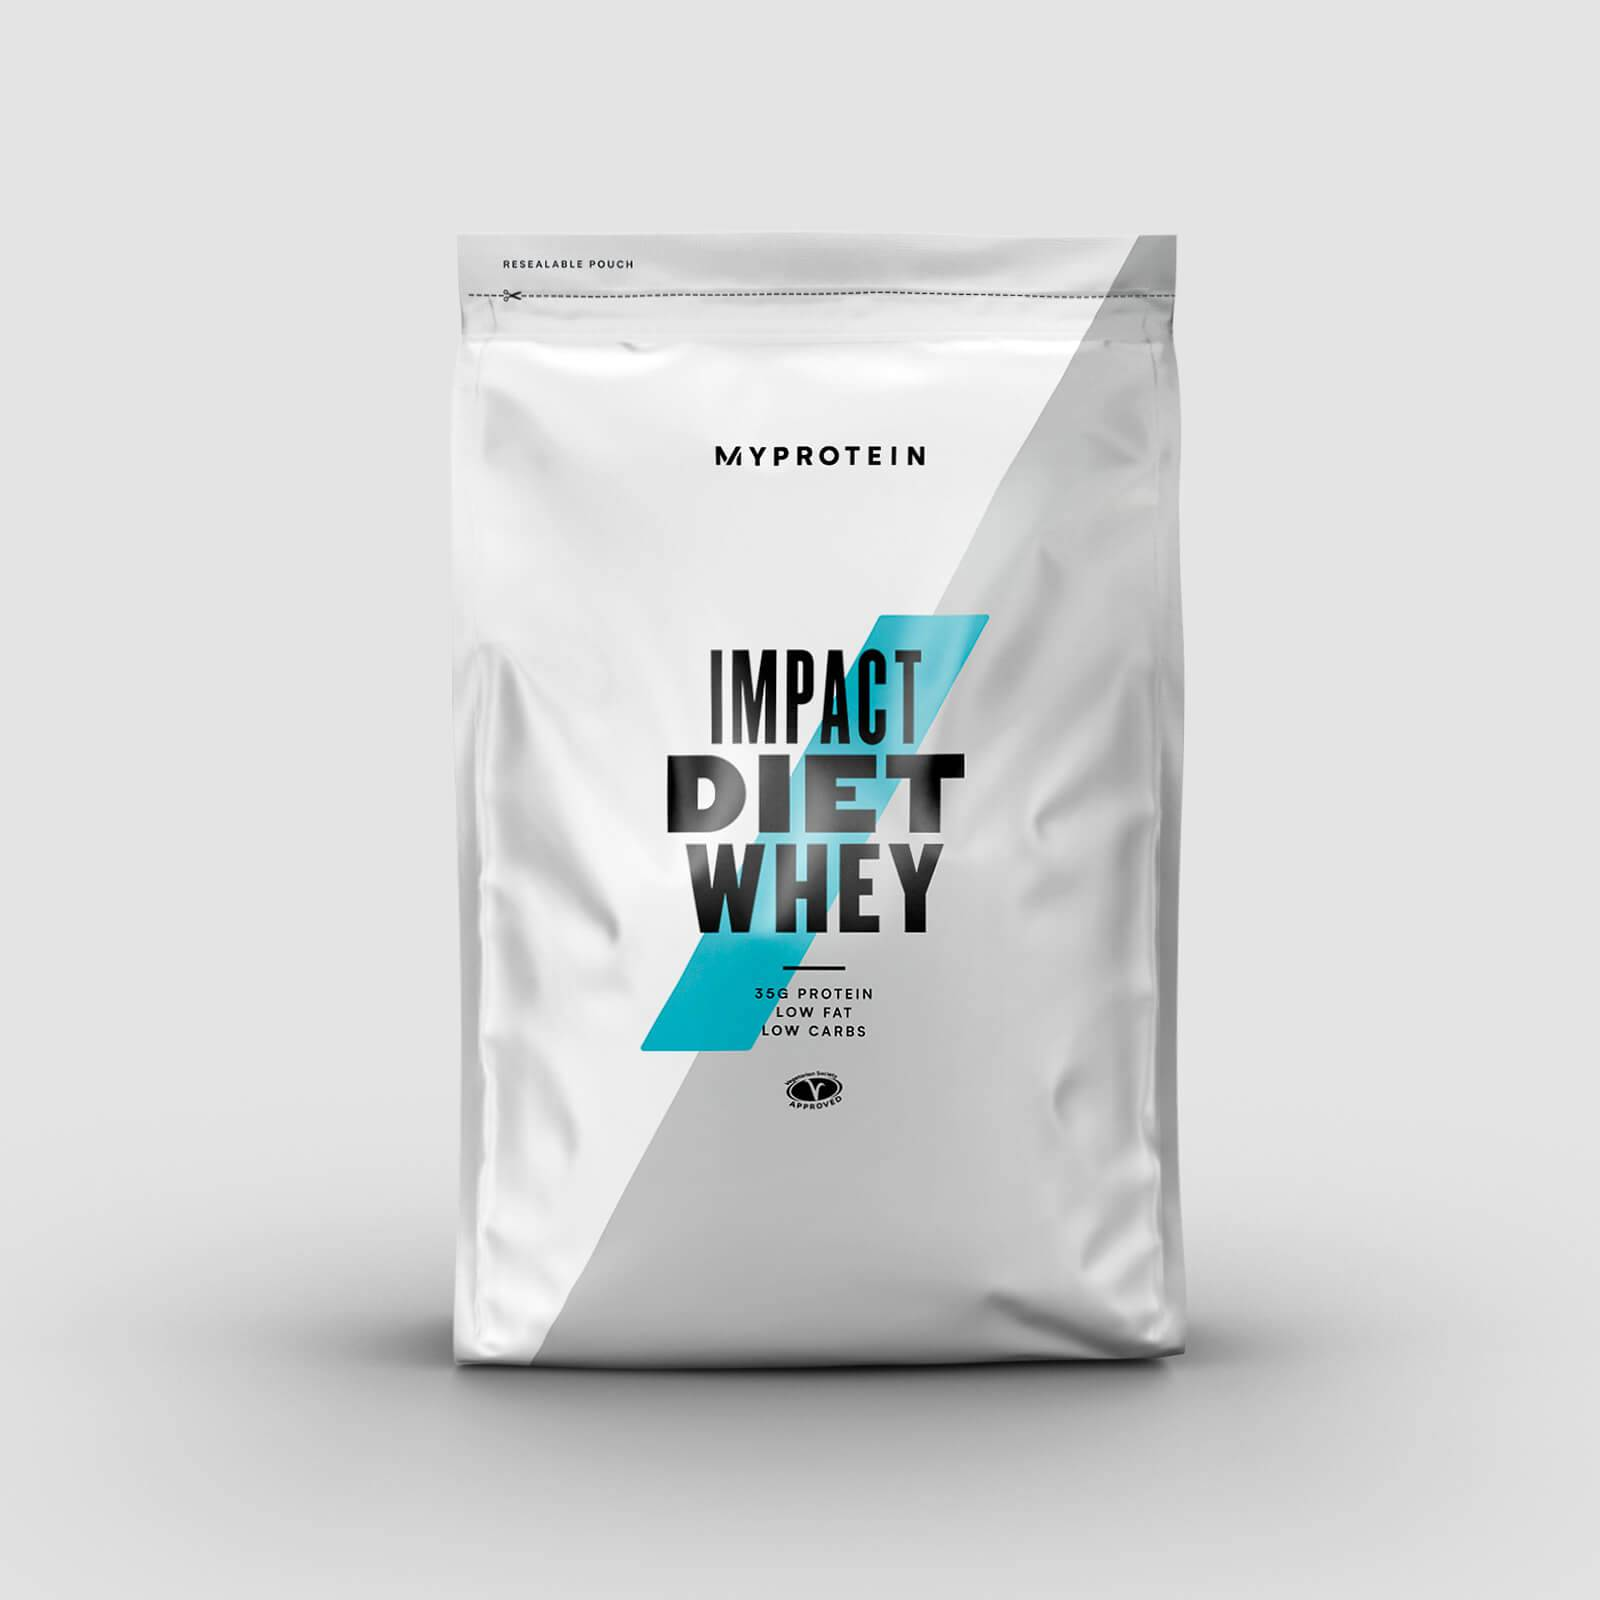 Myprotein Impact Diet Whey - 1kg - Cookies & Cream